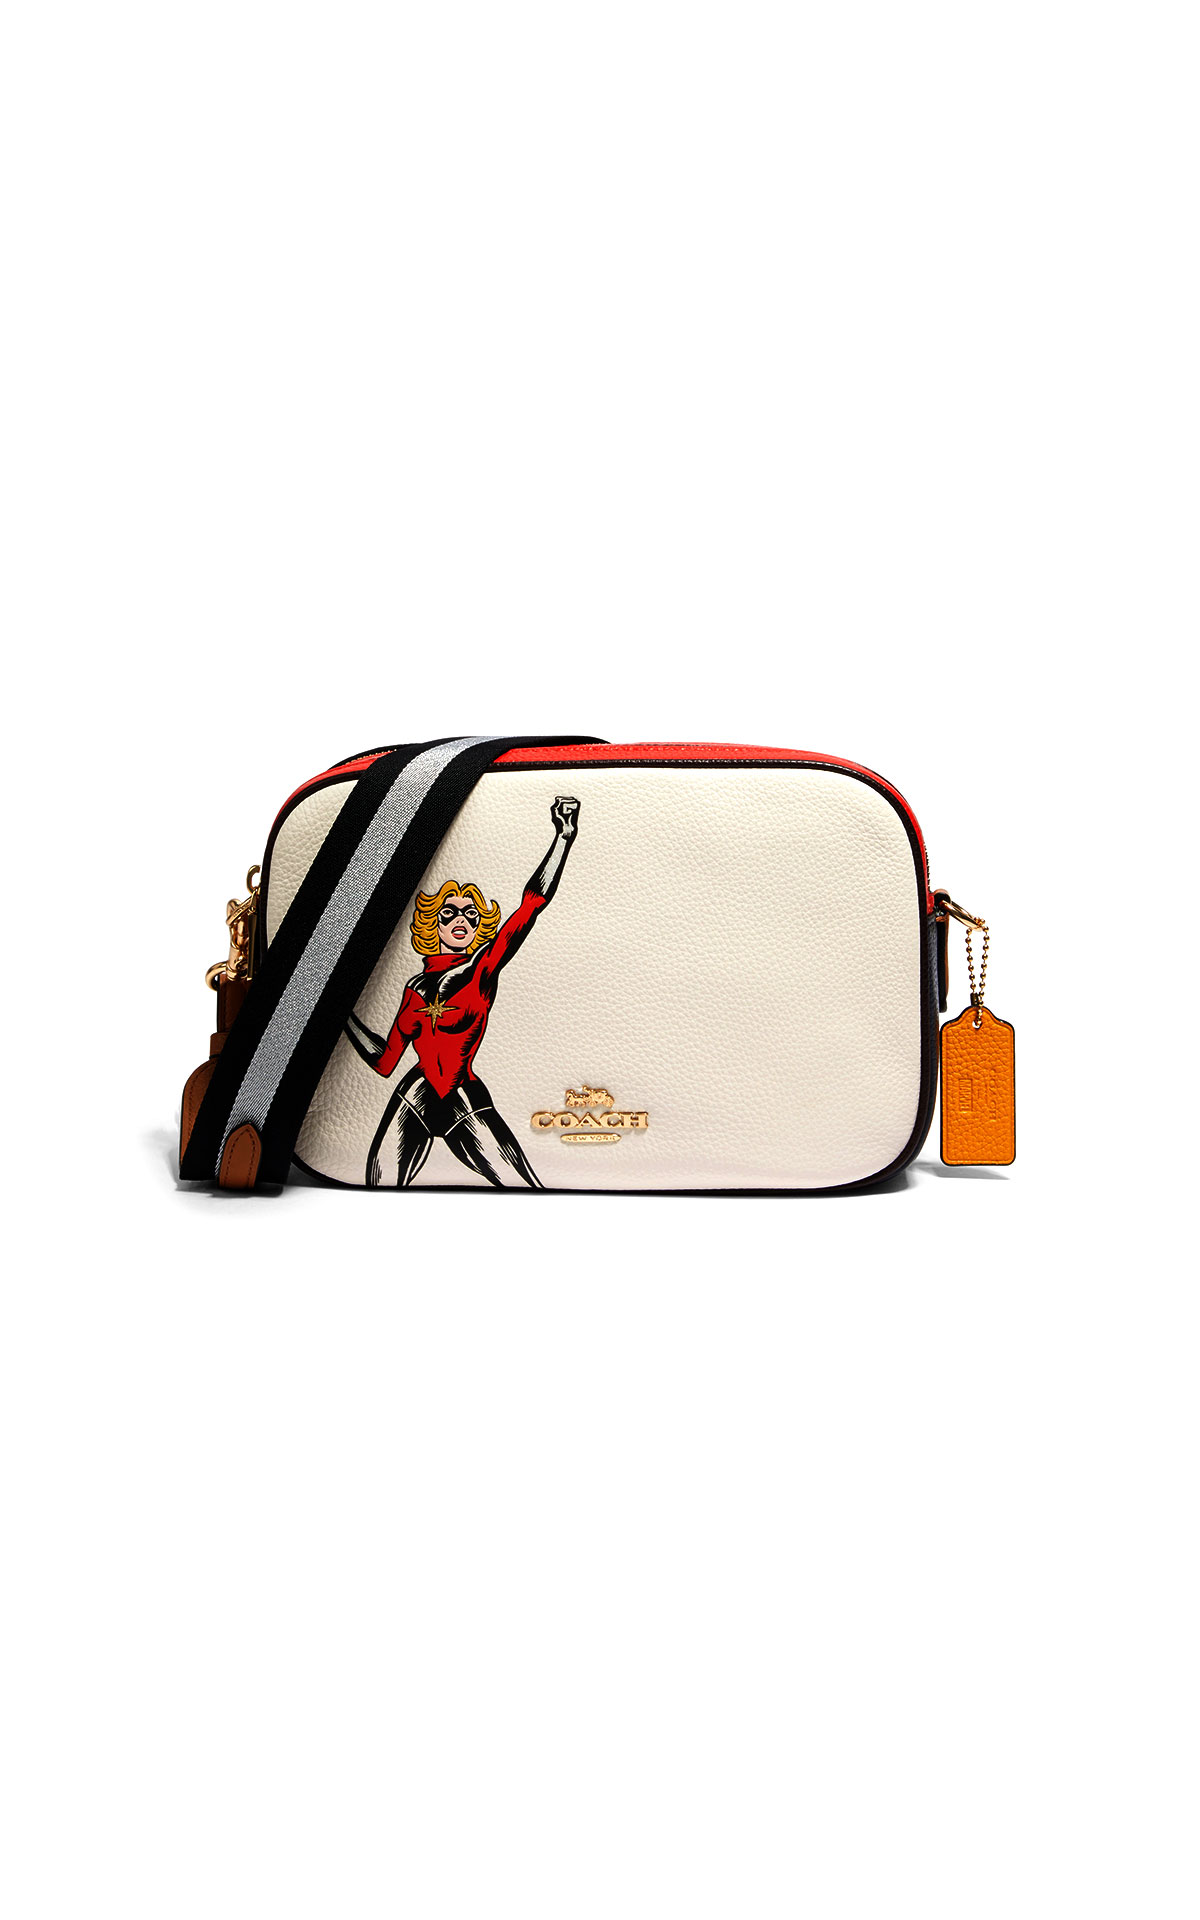 Coach Carol Danvers motif on leather jes crossbody at The Bicester Village Shopping Collection